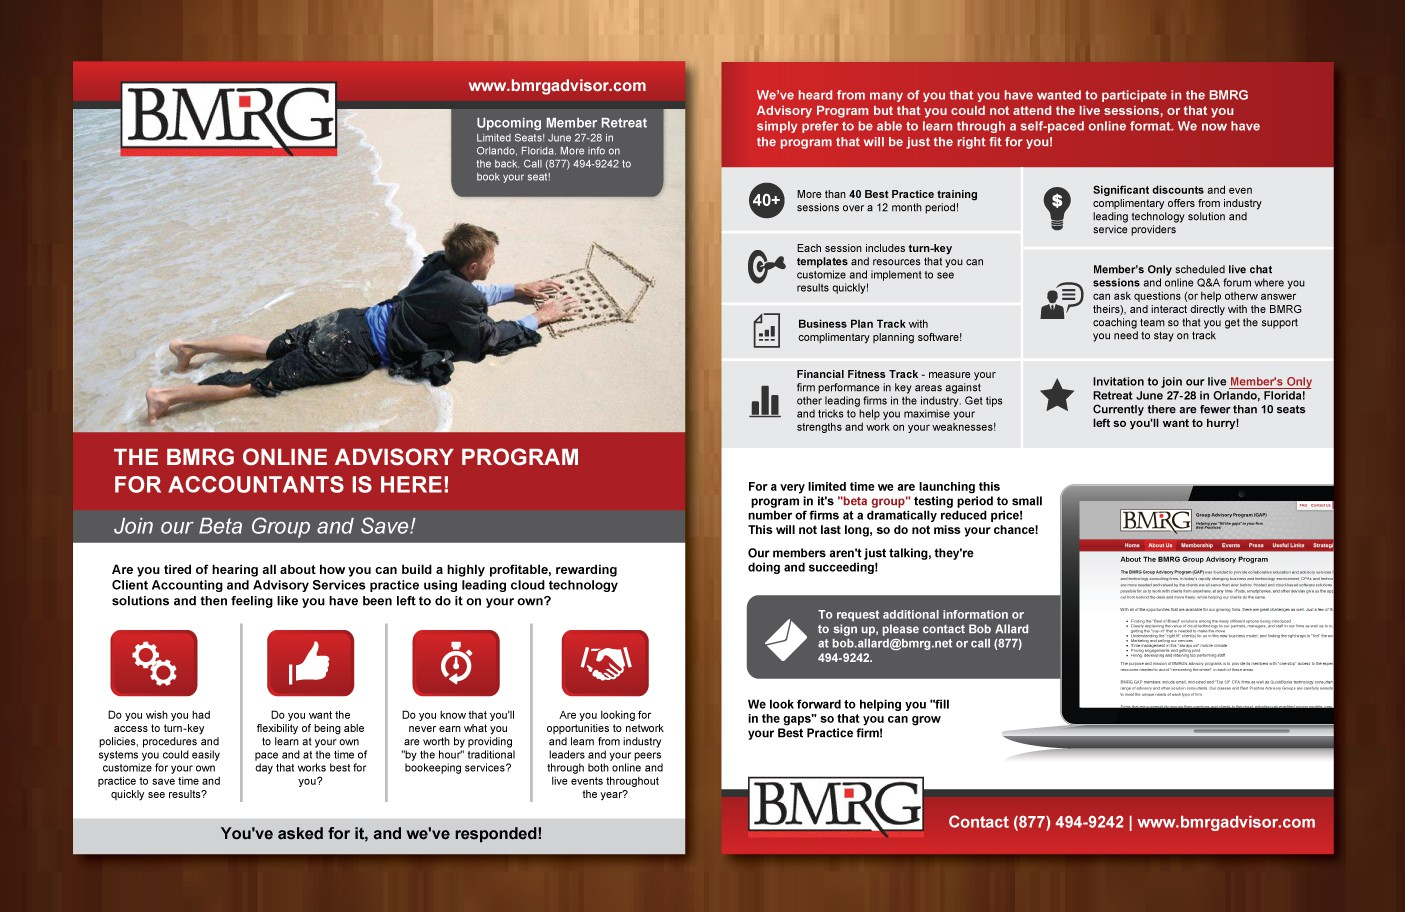 Help BMRG, LLC with a new postcard or flyer